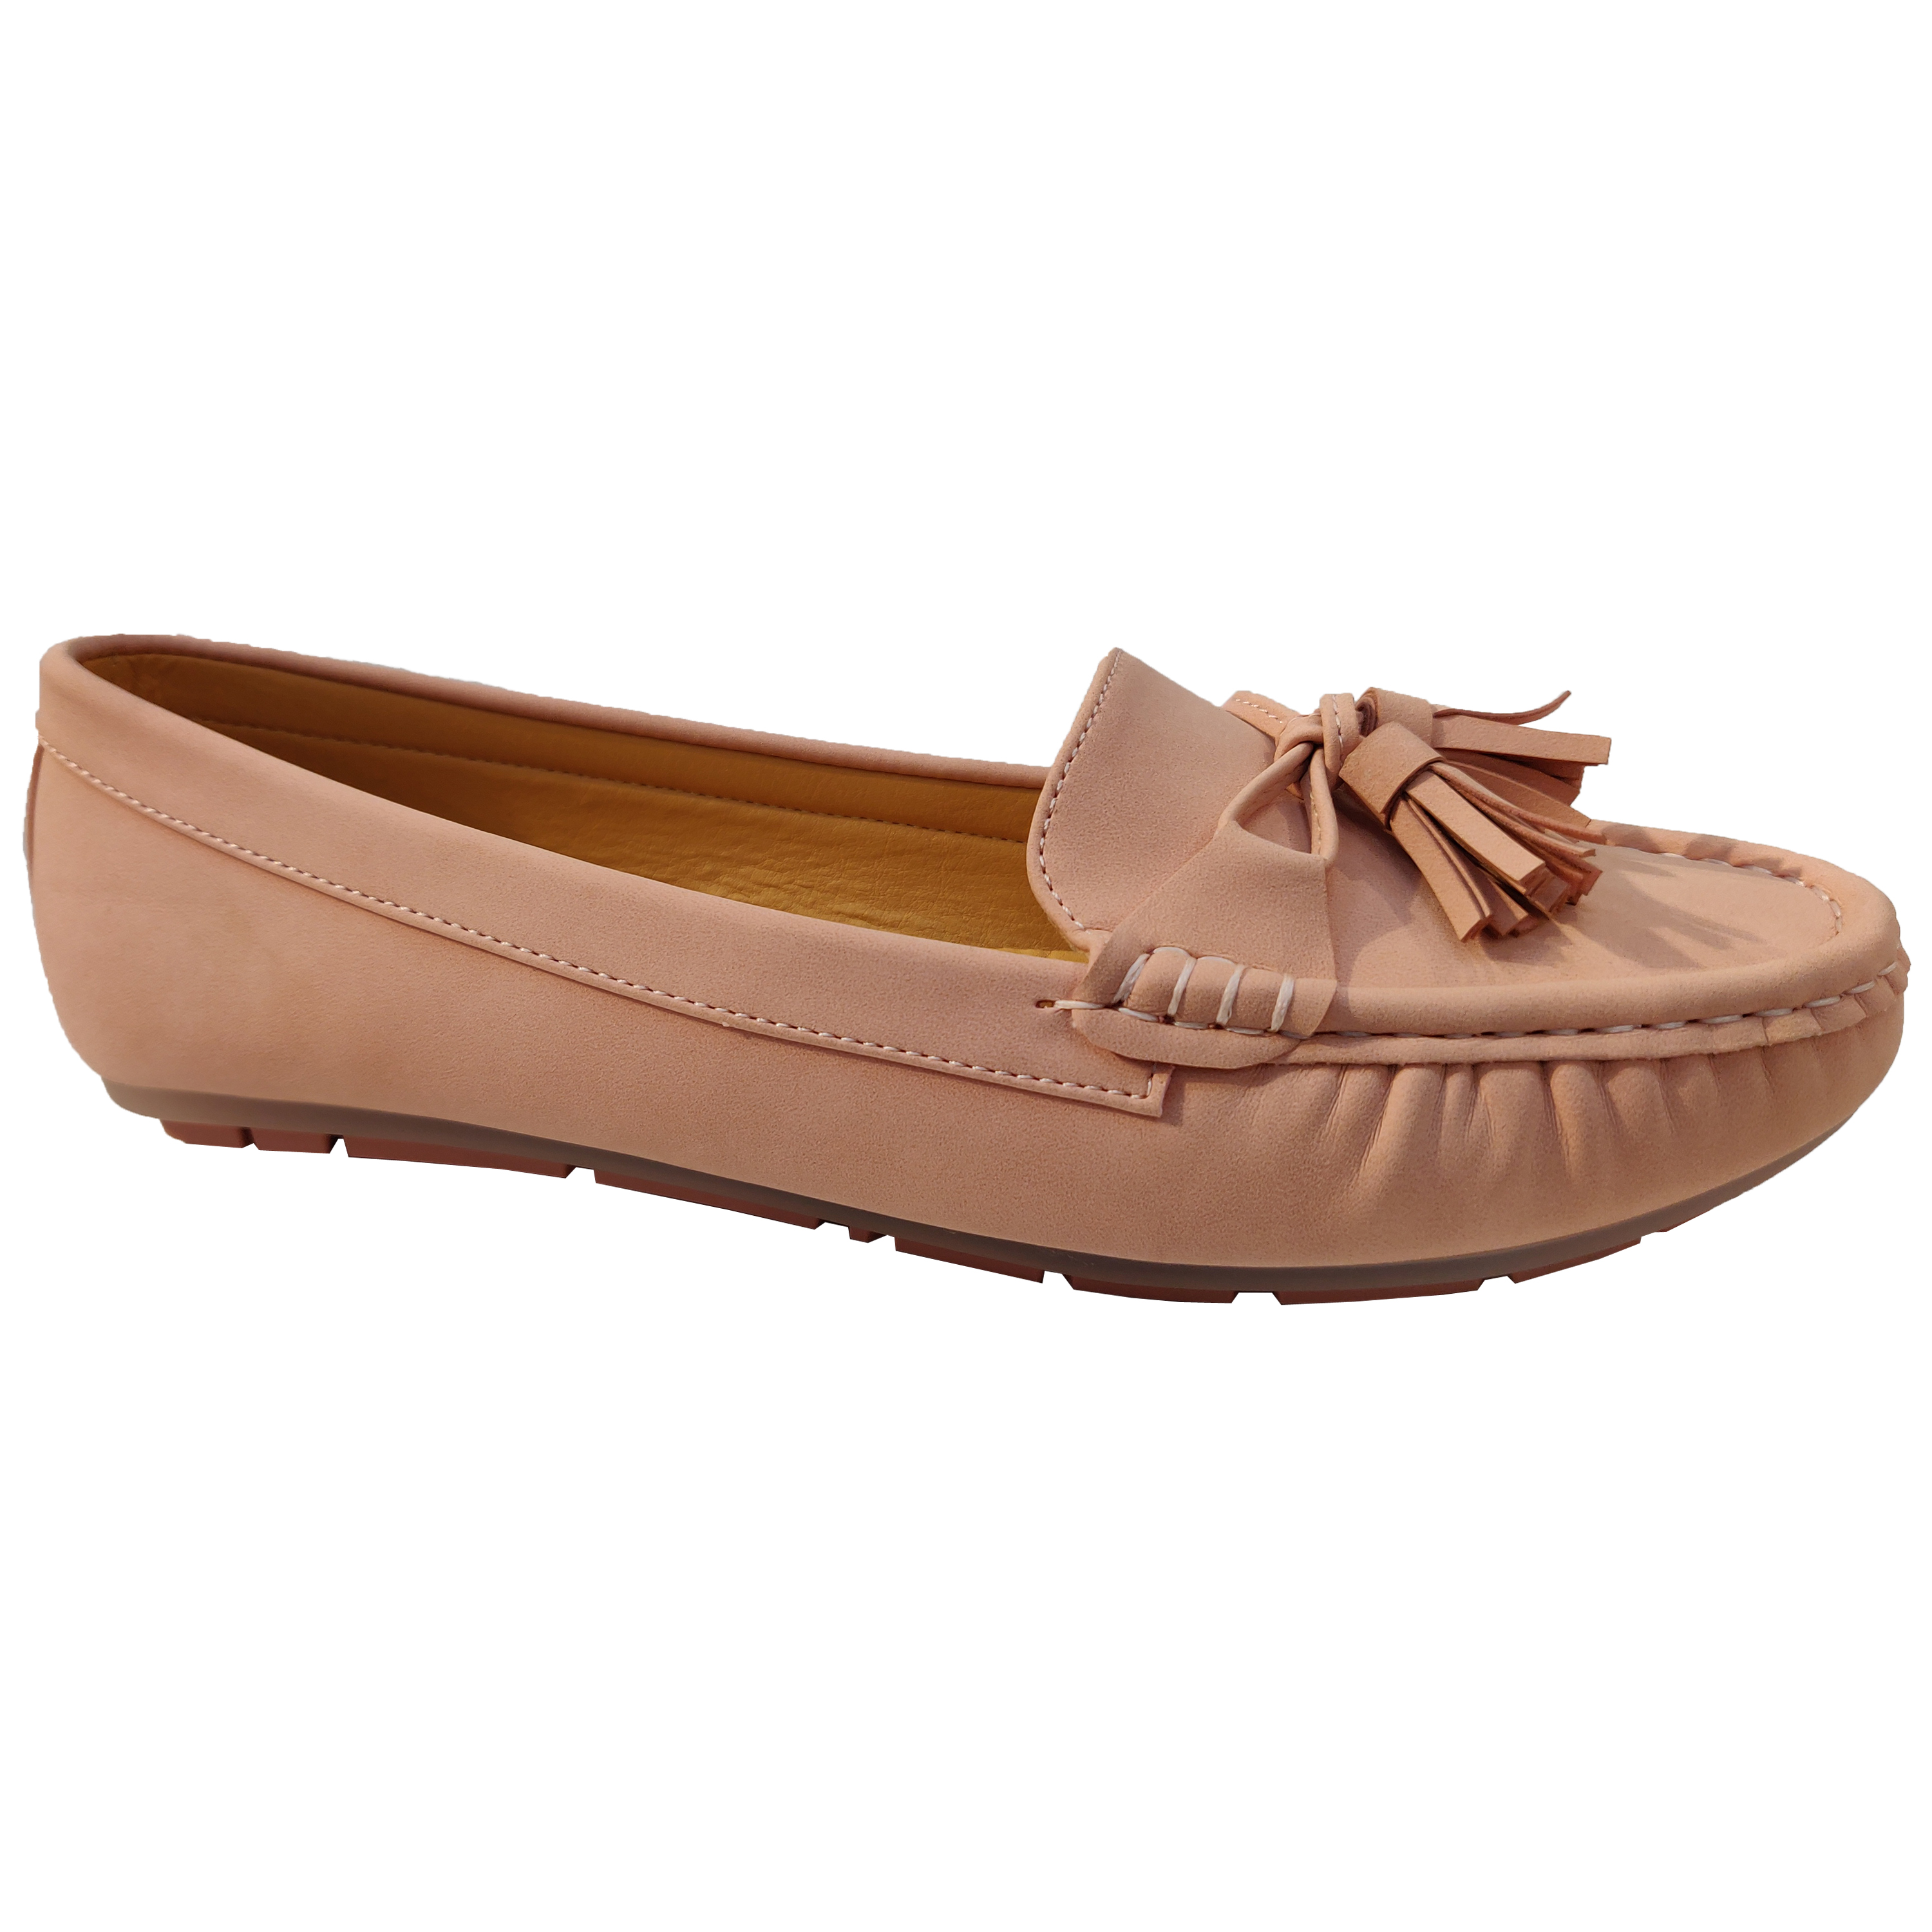 Ladies-Slip-On-Ballerina-Womens-Suede-Look-Pumps-Flat-Bow-Tassels-Shoes-Fashion thumbnail 17